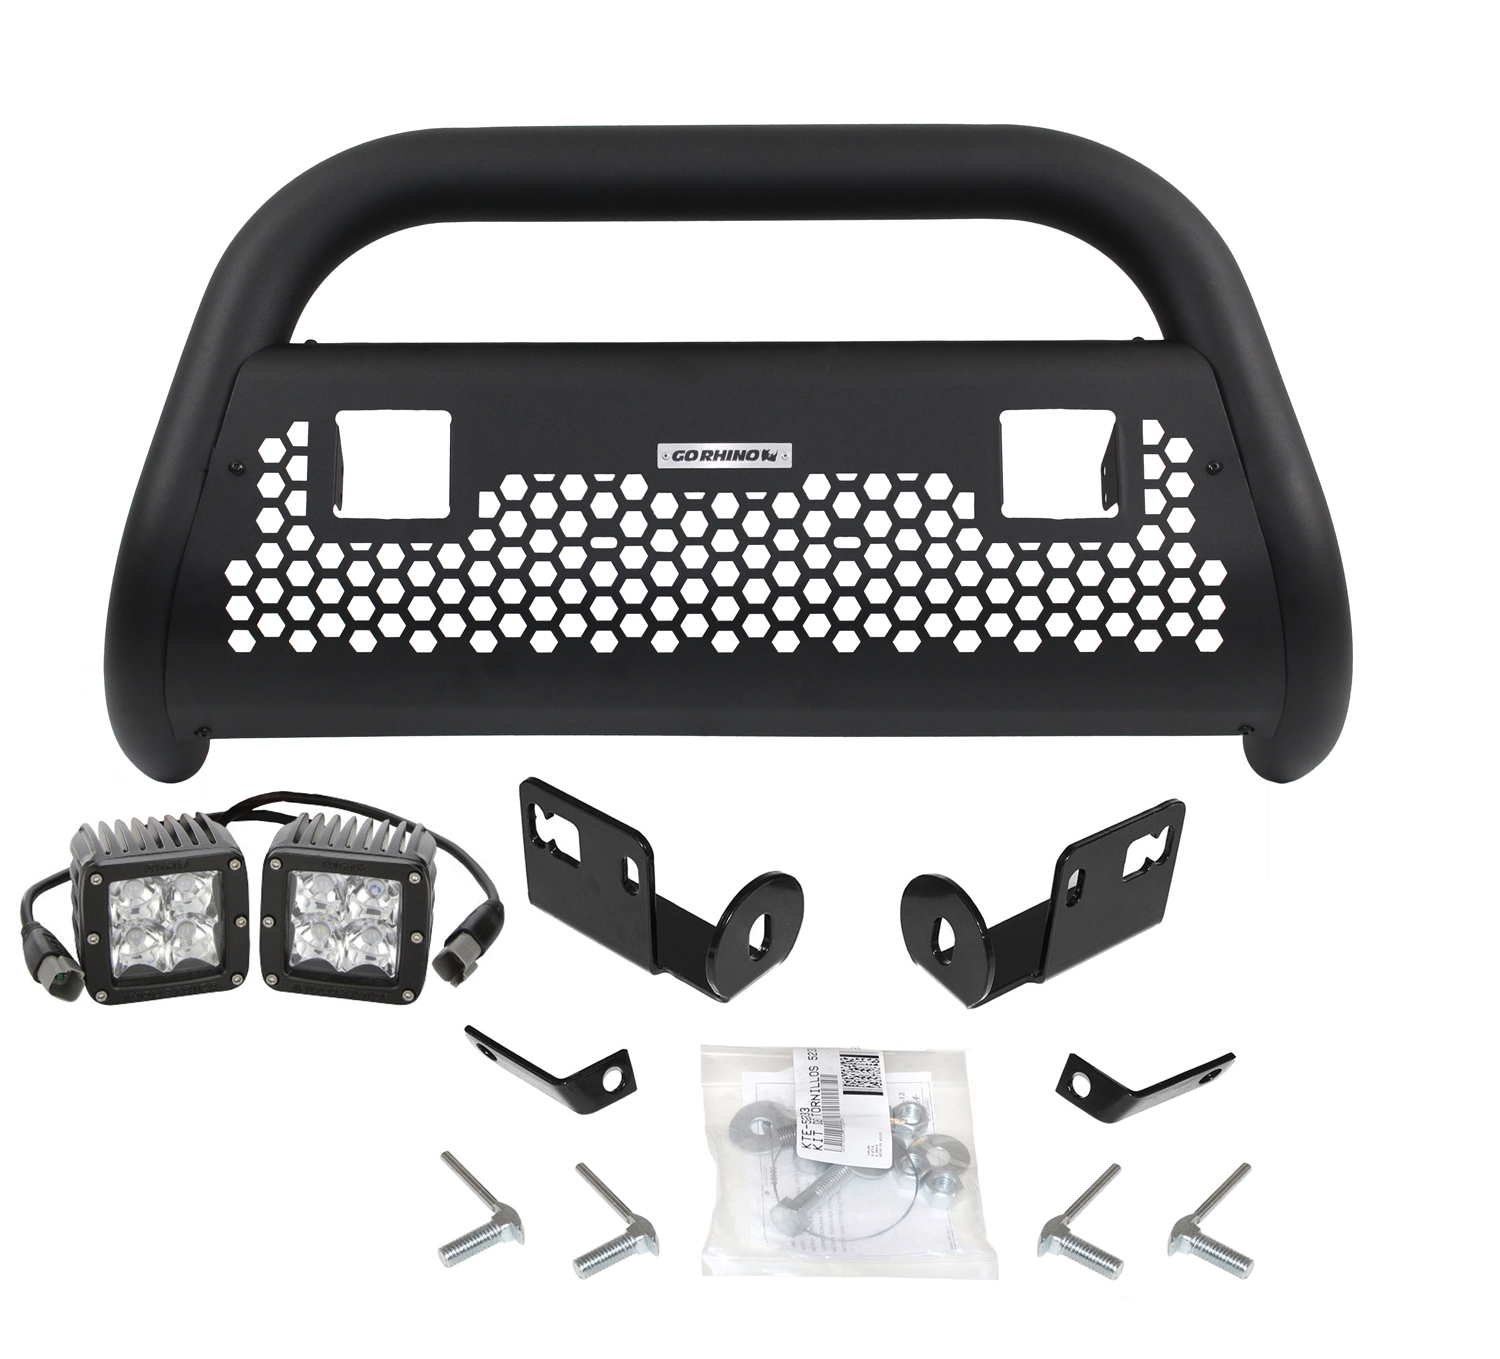 RHINO! Charger 2 Light Ready RC2 LR Bull Bar, Mounting Brackets, & Lights 2005-2015 Tacoma